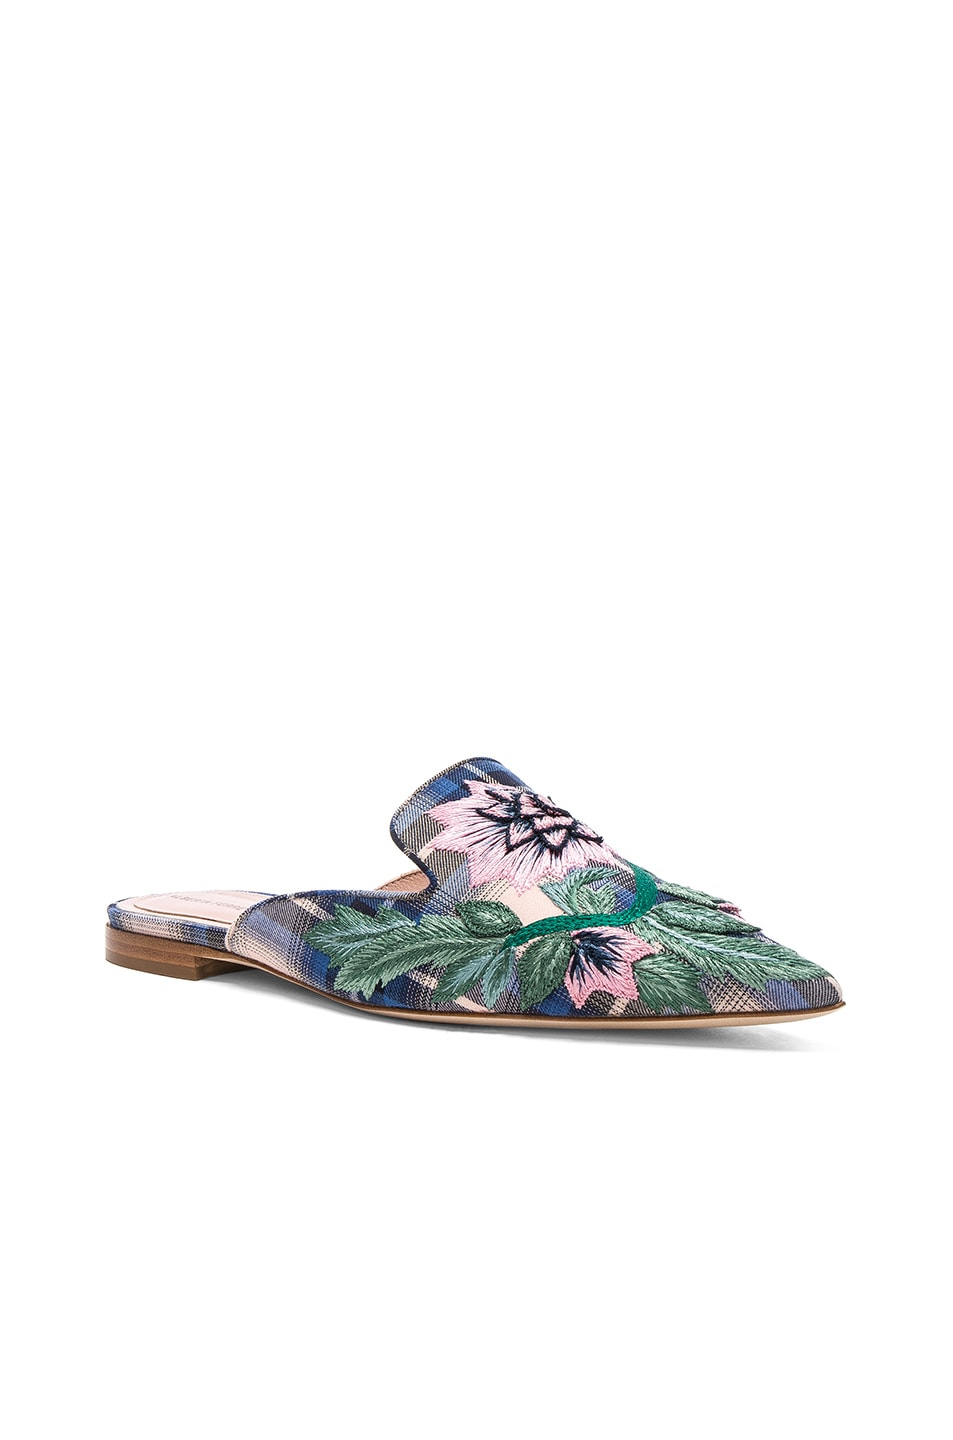 Alberta Ferretti Flower Embroidered Mules in .